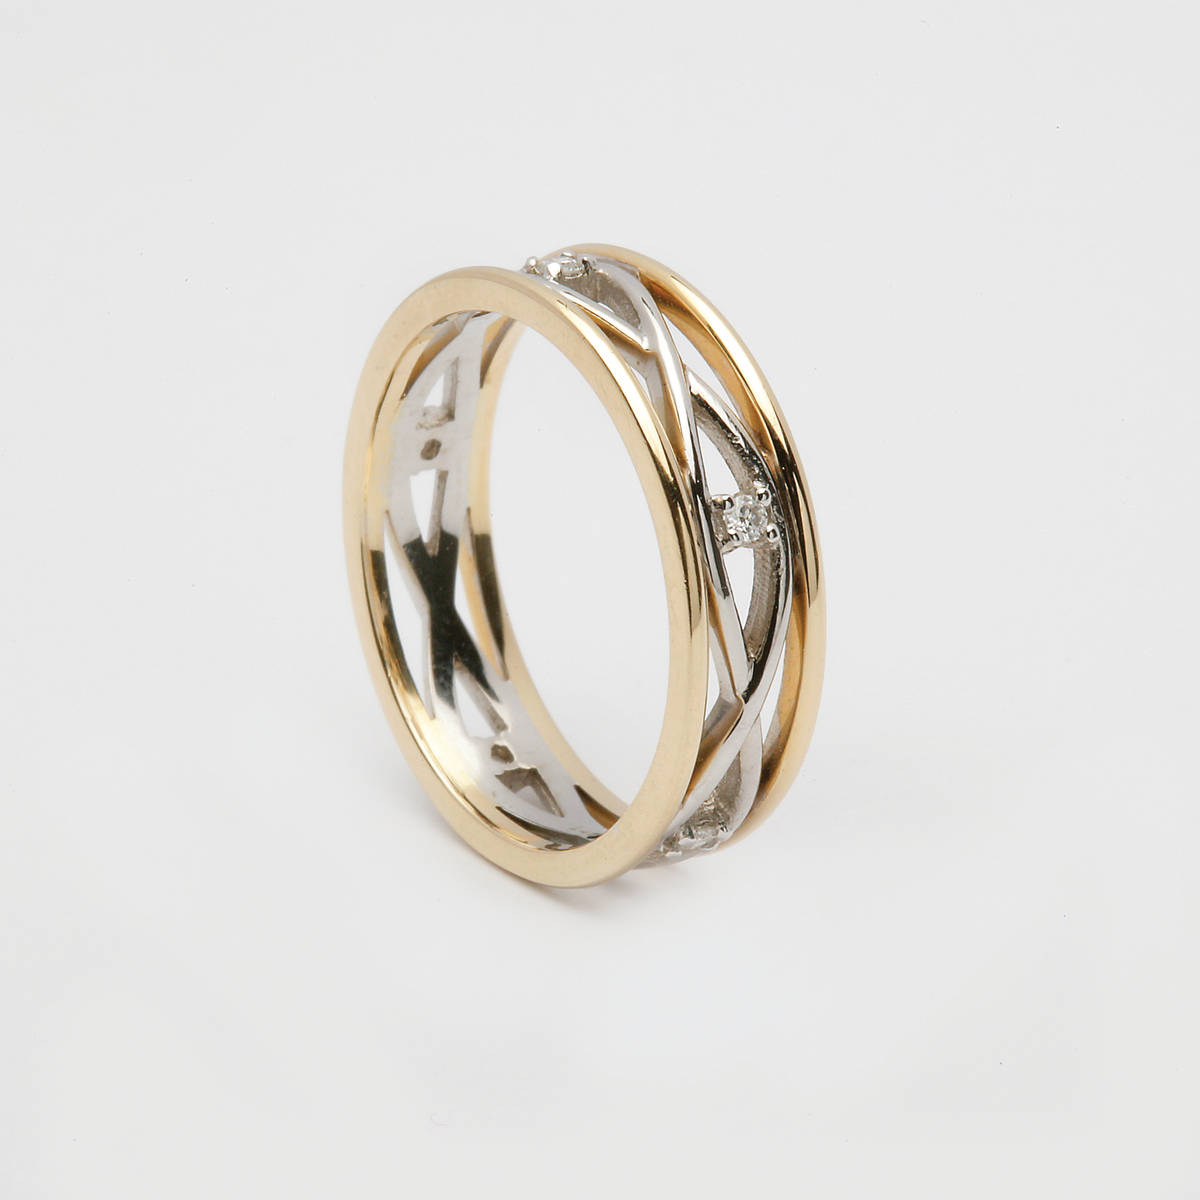 18 carat white gold lady's two lines entwined Celtic wedding ring with yellow gold shoulders and set with diamonds.